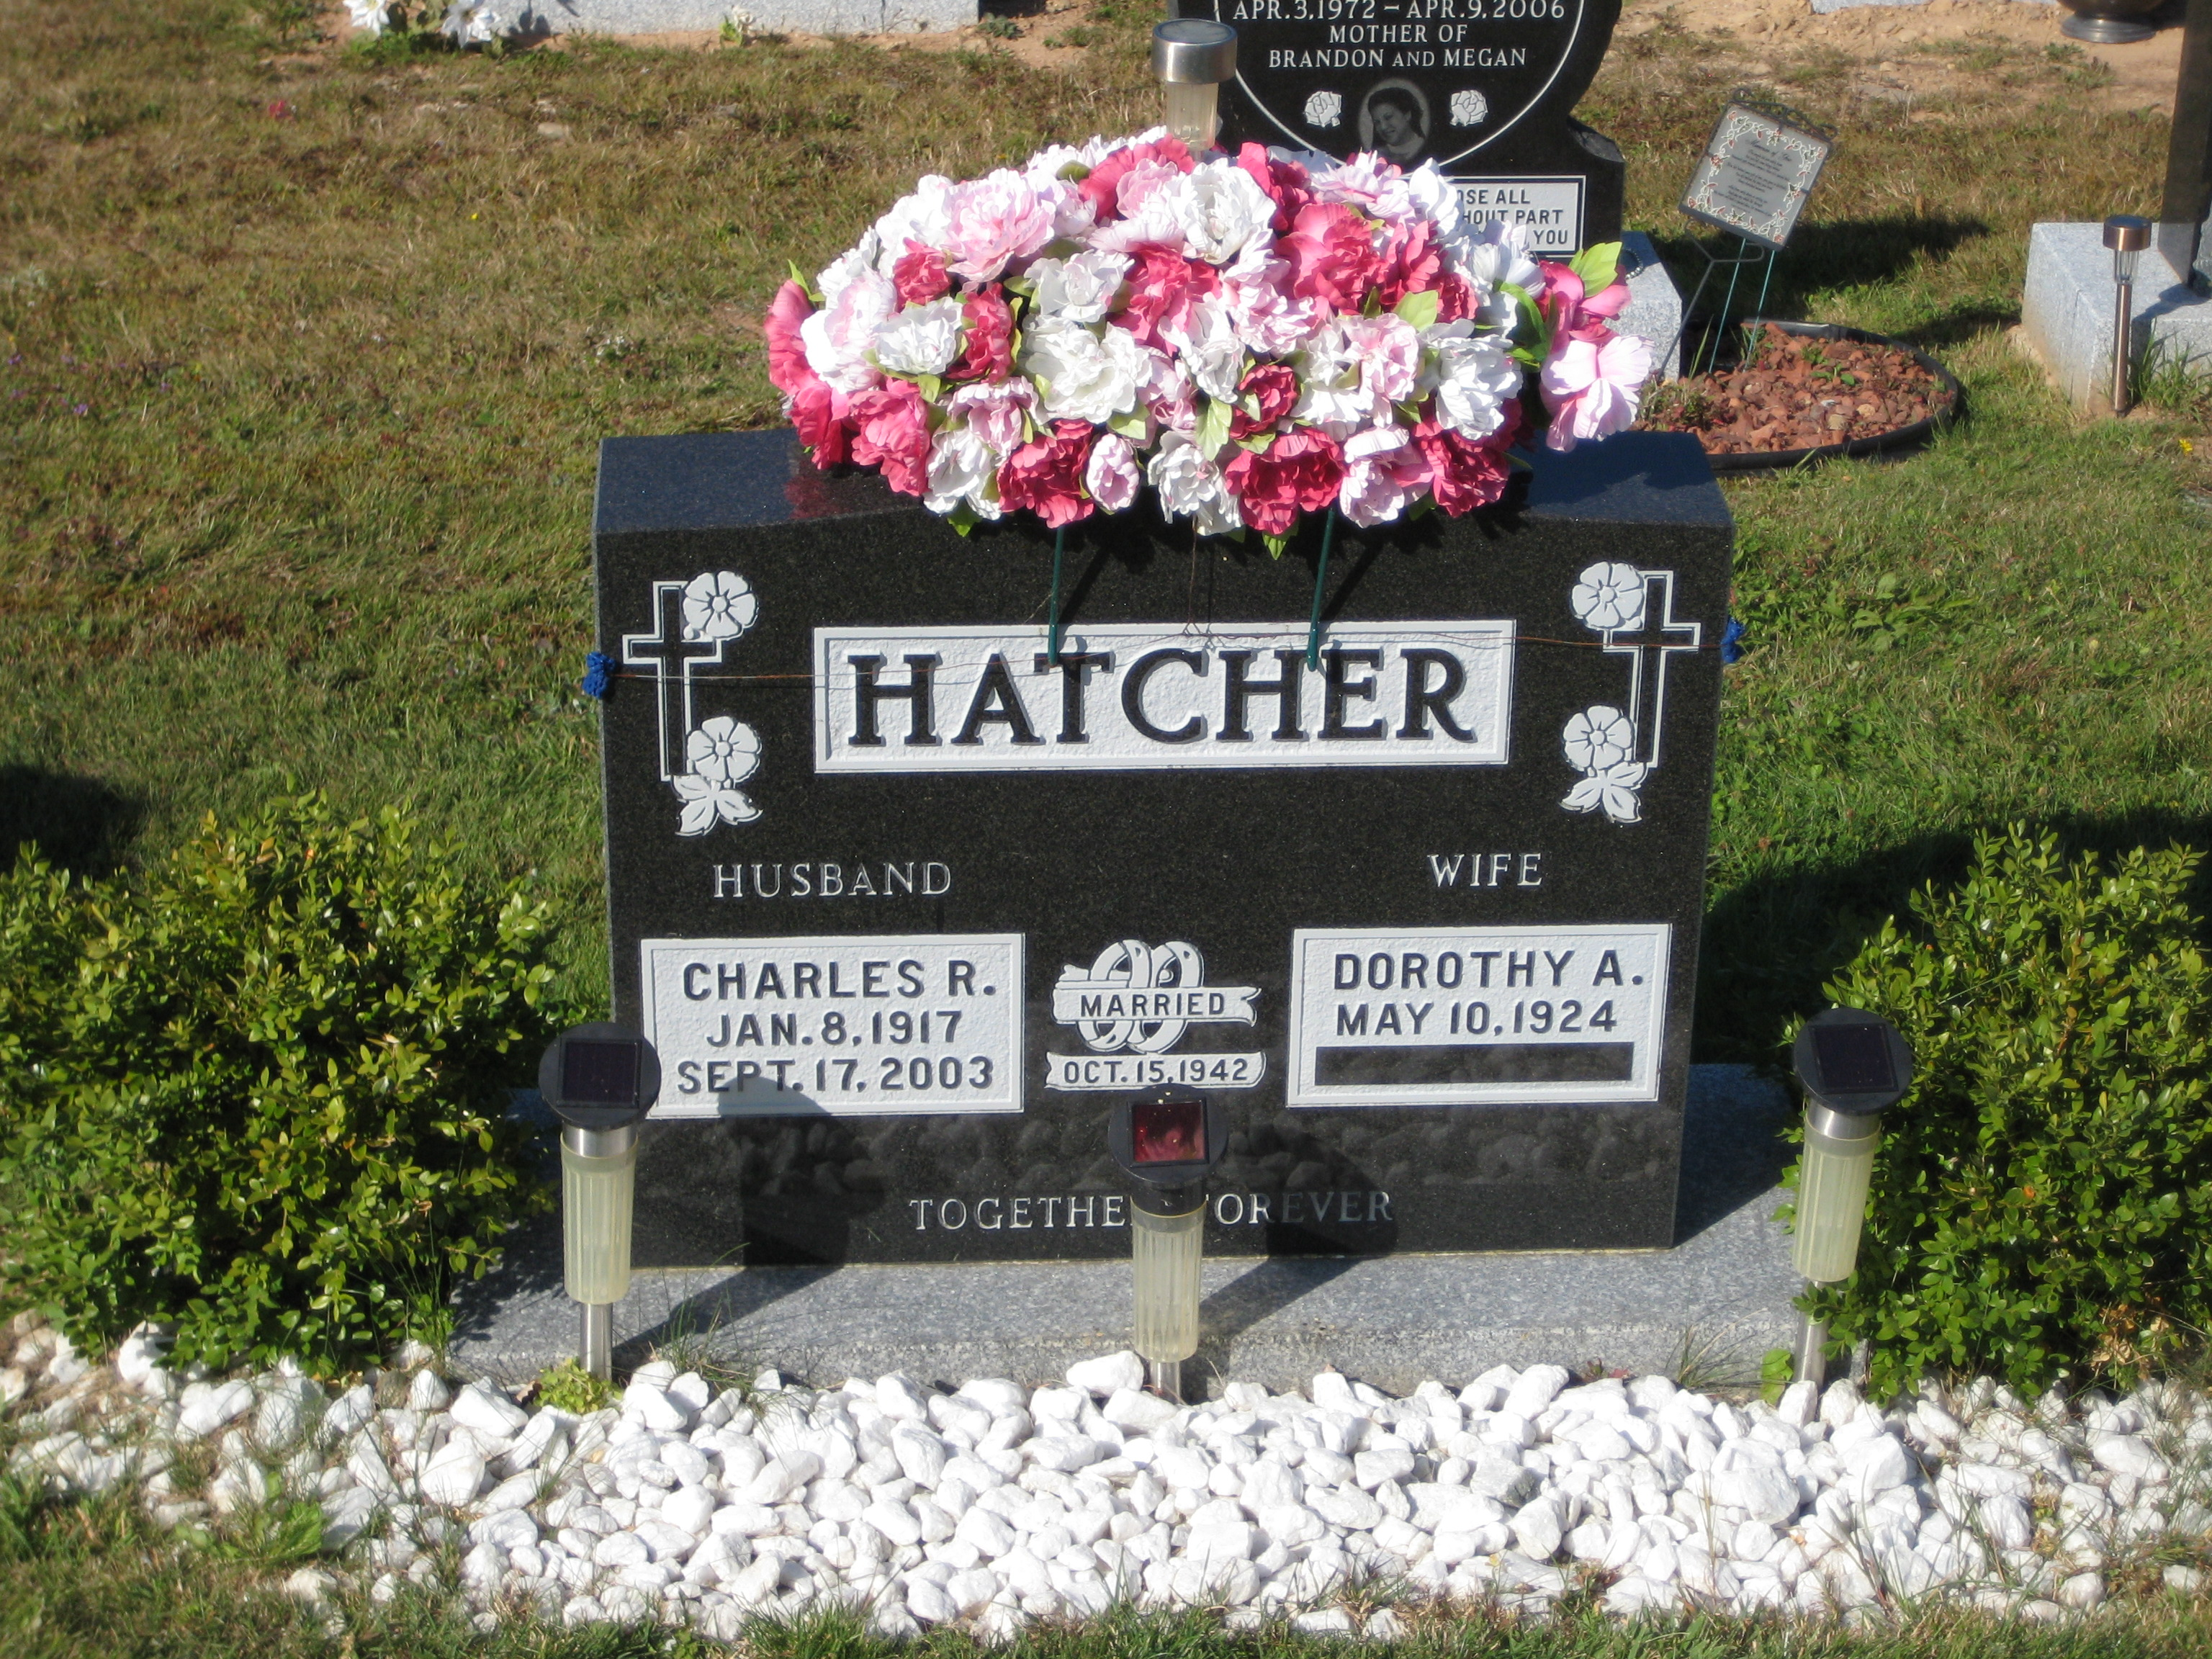 Charles Ray Hatcher